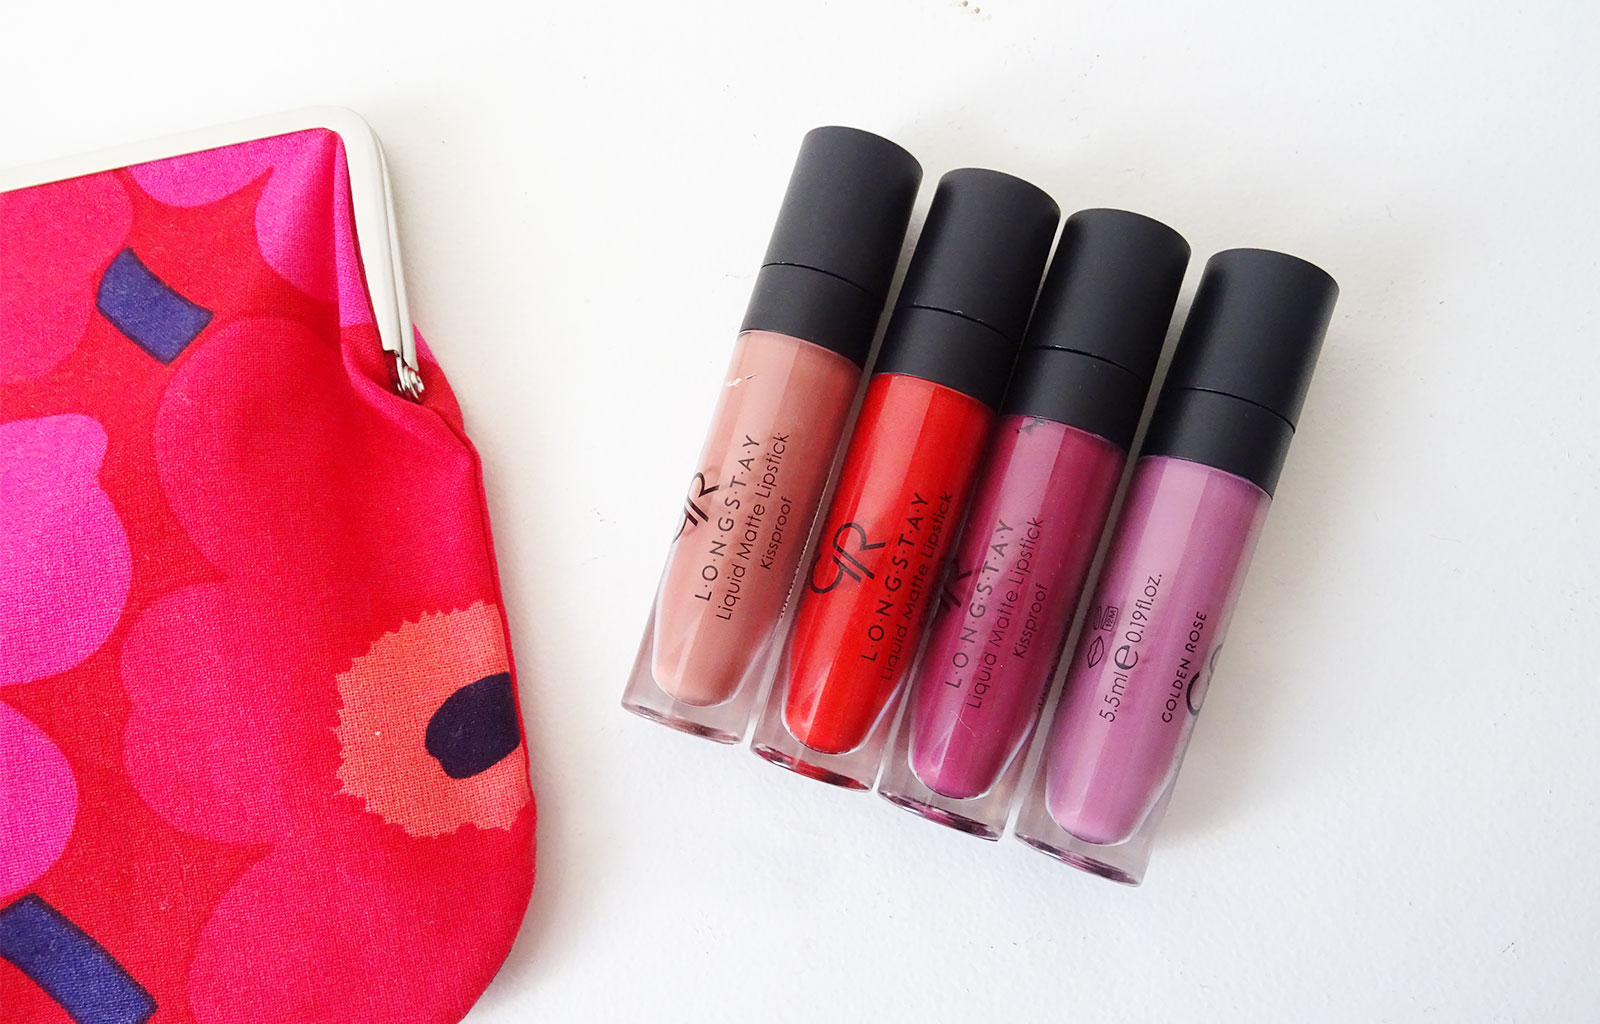 Longstay Liquid Matte Lipstick Cookie's Make Up